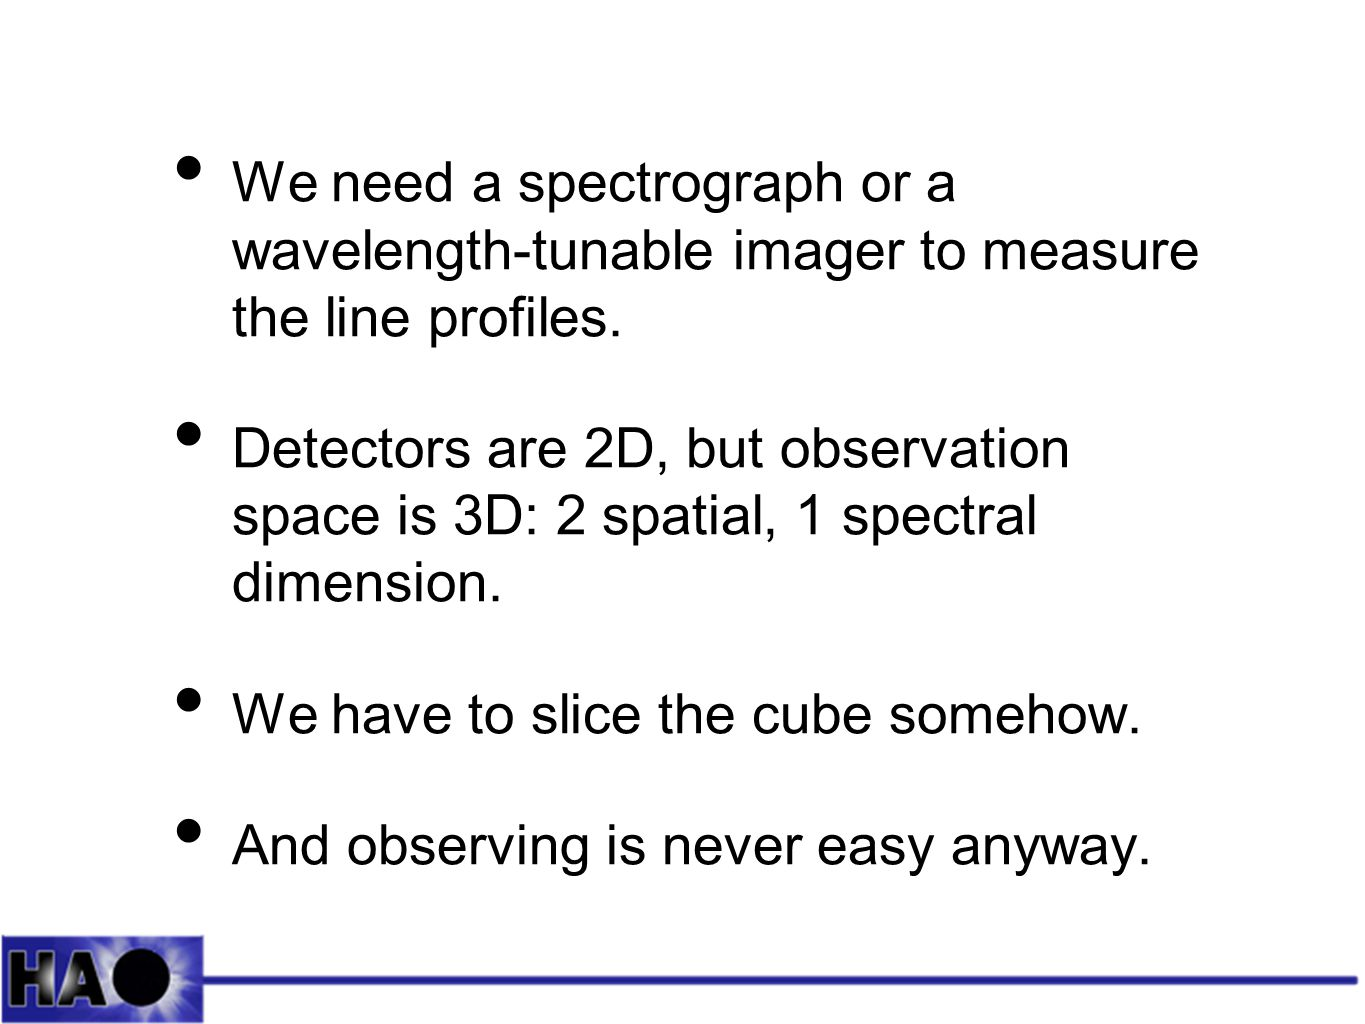 We need a spectrograph or a wavelength-tunable imager to measure the line profiles.